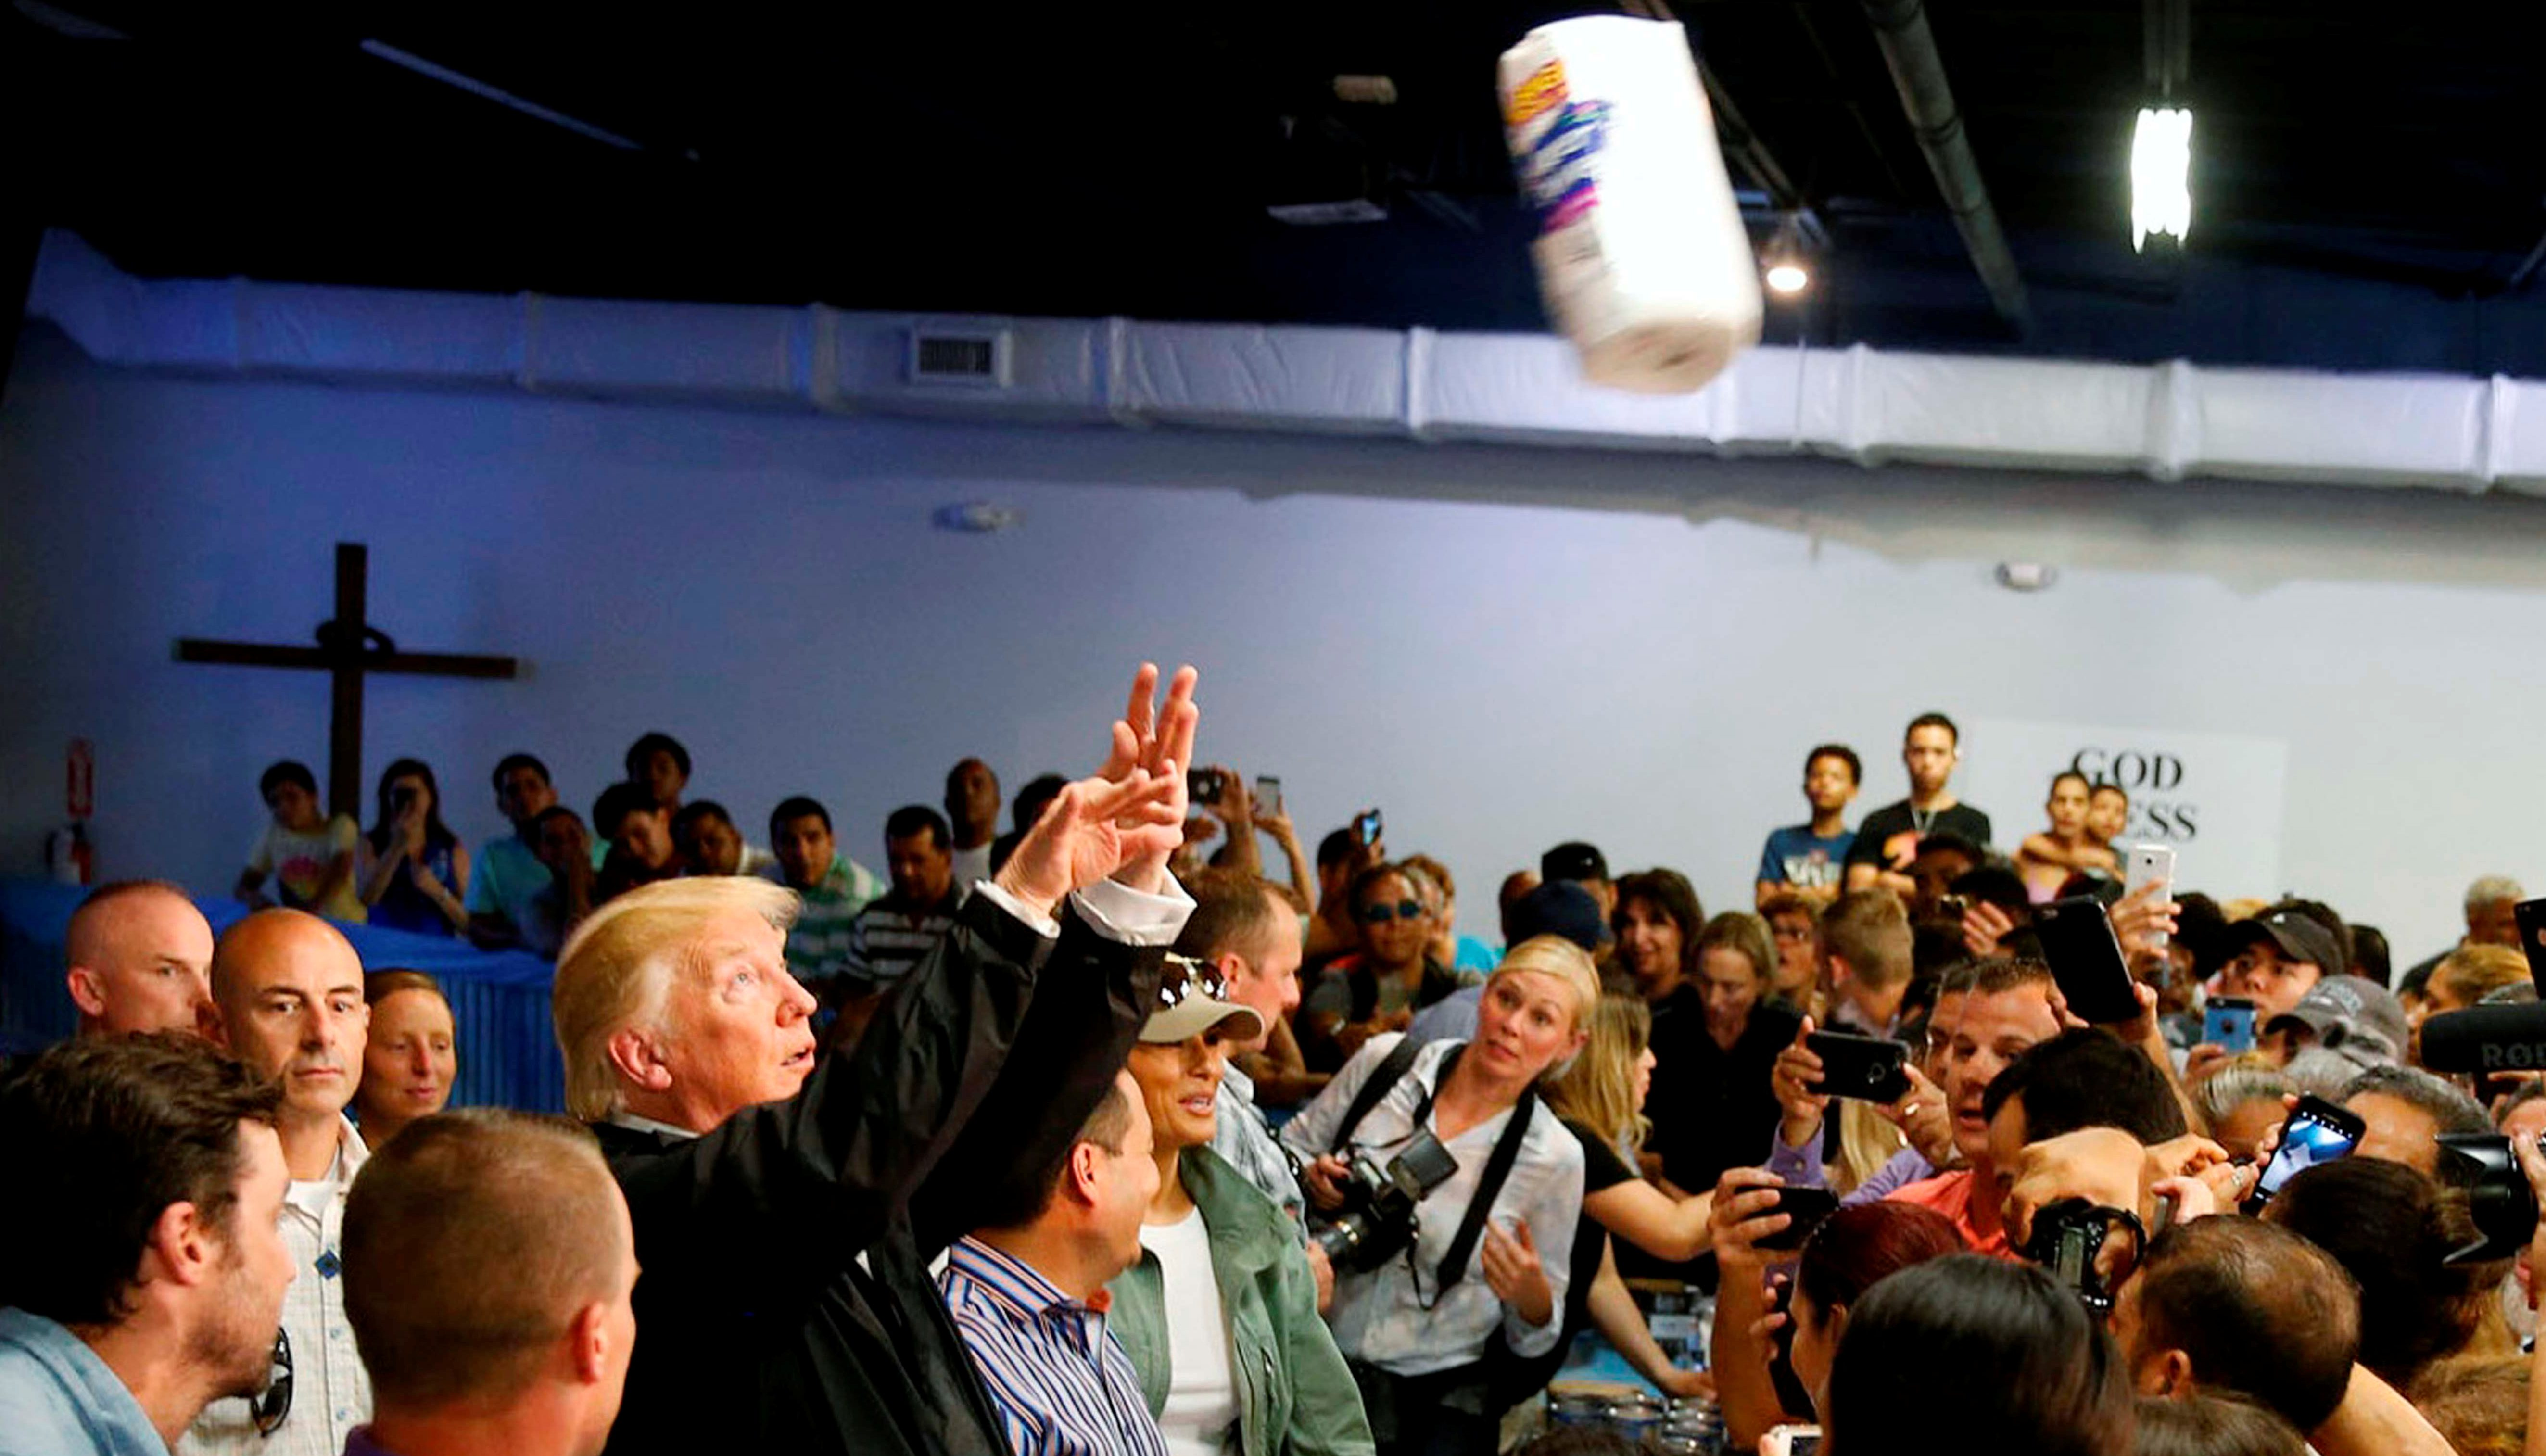 President Trump throws a roll of paper towels to residents gathered in a chapel while visiting areas damaged by Hurricane Maria in San Juan, Puerto Rico